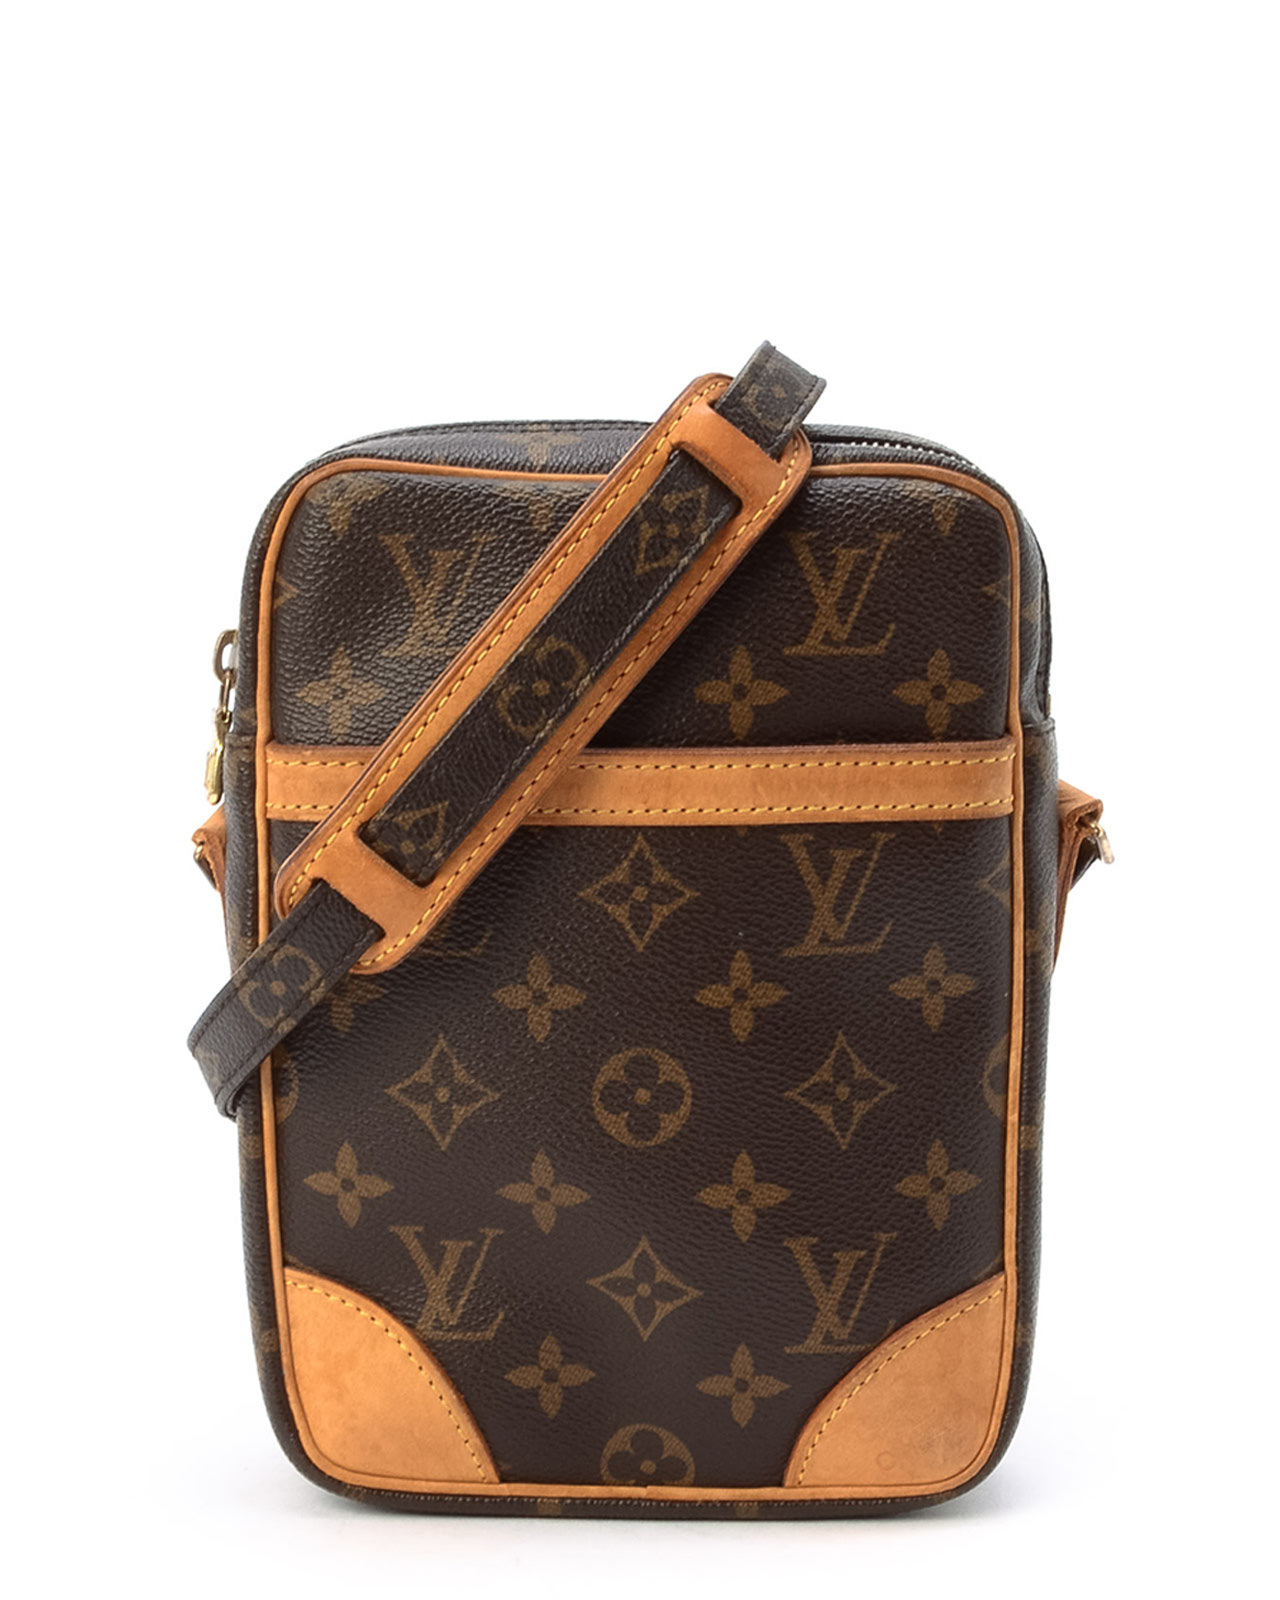 Perfect Louis Vuitton Abbesses Messenger Bag - Bags - LOU61475 | The RealReal